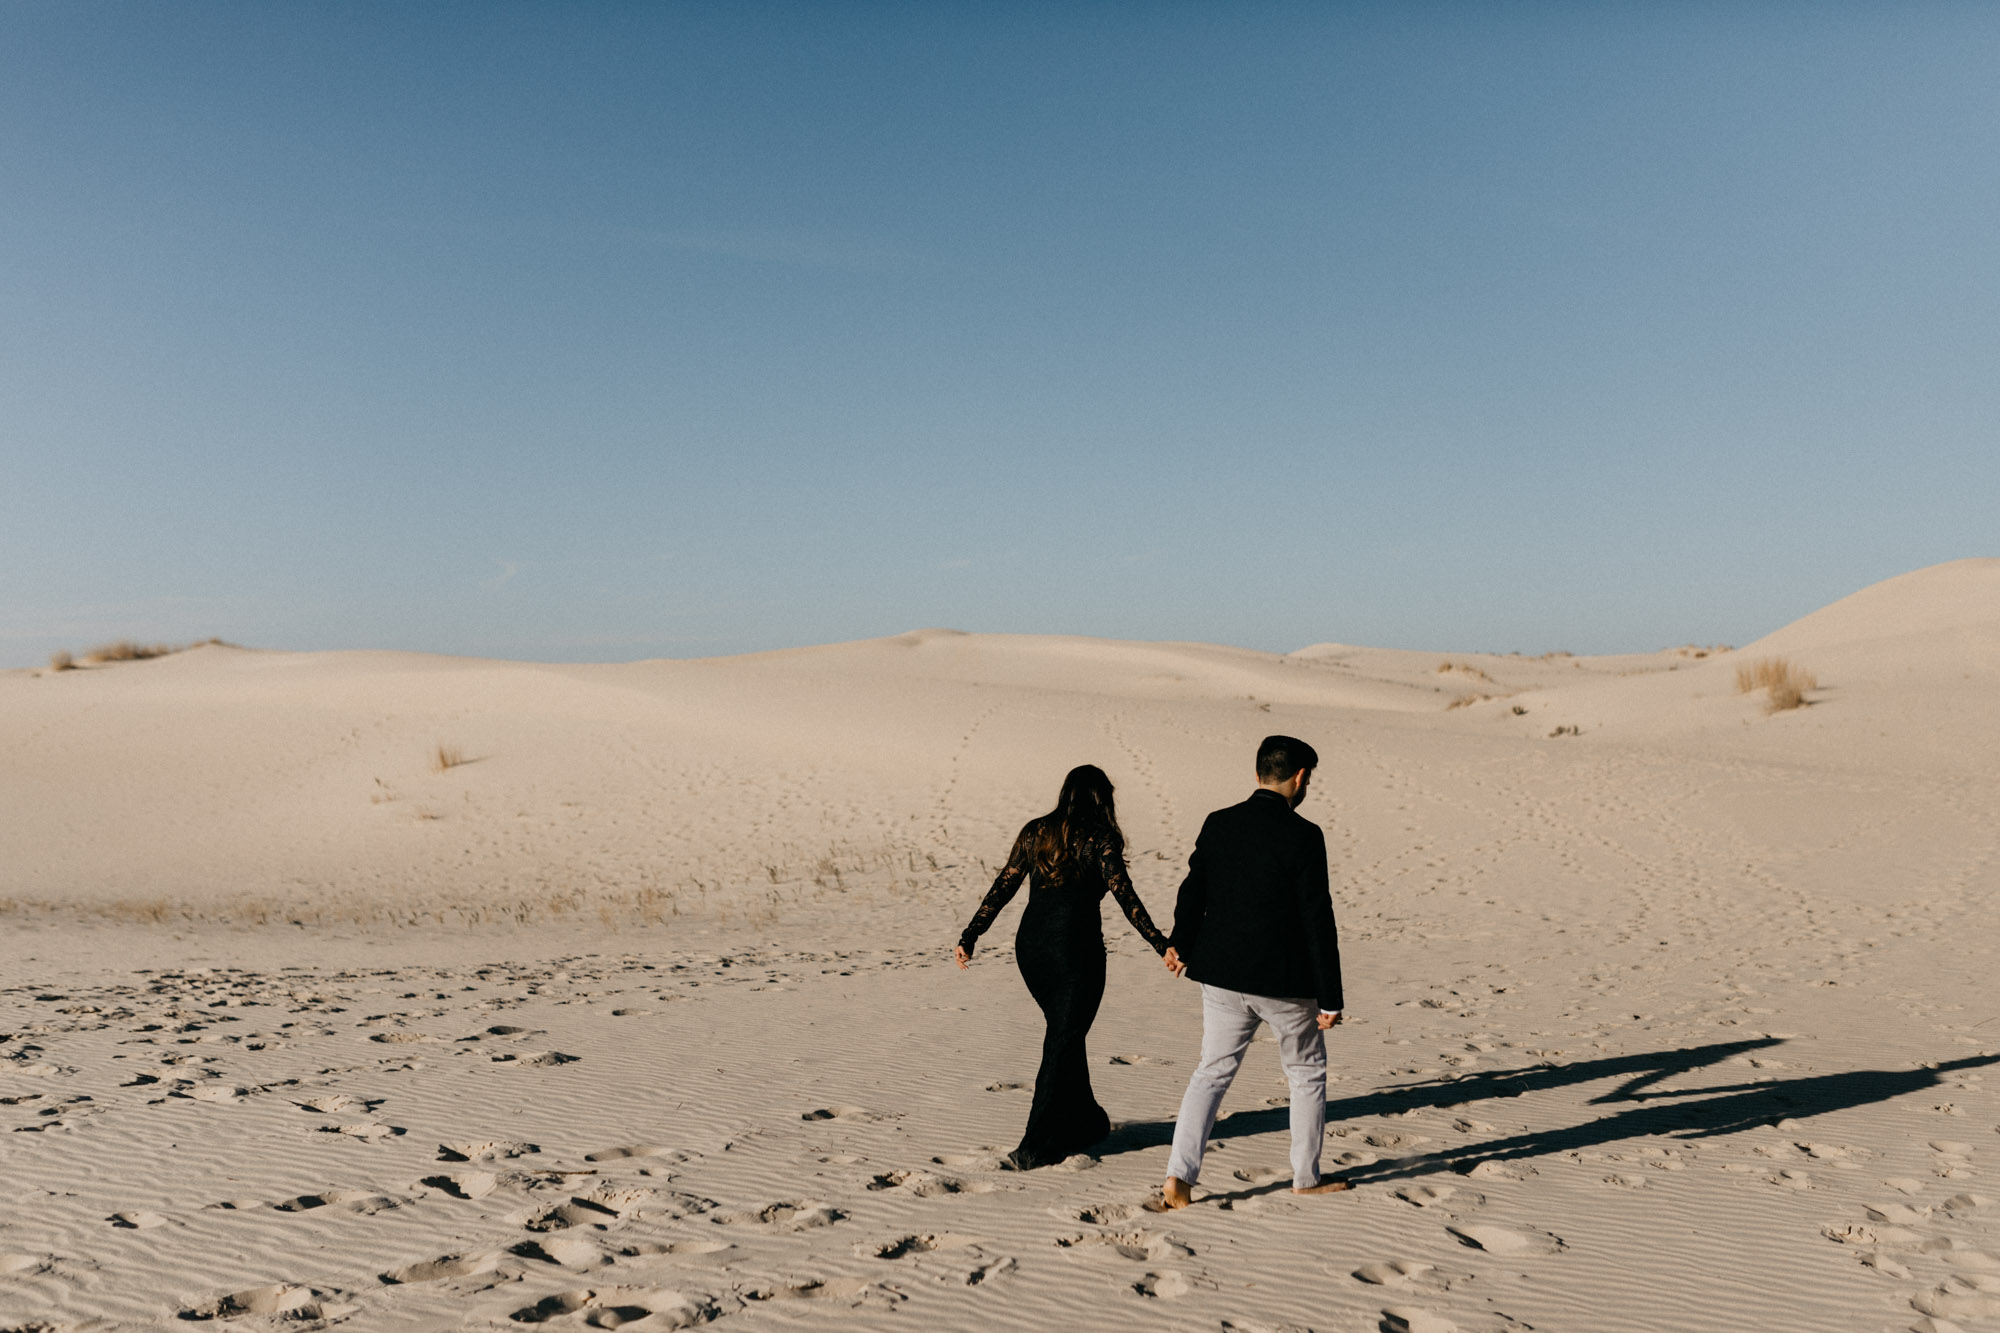 This desert inspired engagement session will leave you feeling so excited for your couples photos! Adventure Photographer | Destination wedding photography | Sand hills engagement session | Desert inspired couples photography | Romantic engagement photos | West Texas Photography Locations | Fort Worth Wedding Photographer | Engagement Photo Inspiration | Couples Photography Poses | Desert Photos | Texas Photography Location | North Texas Engagement Photographer